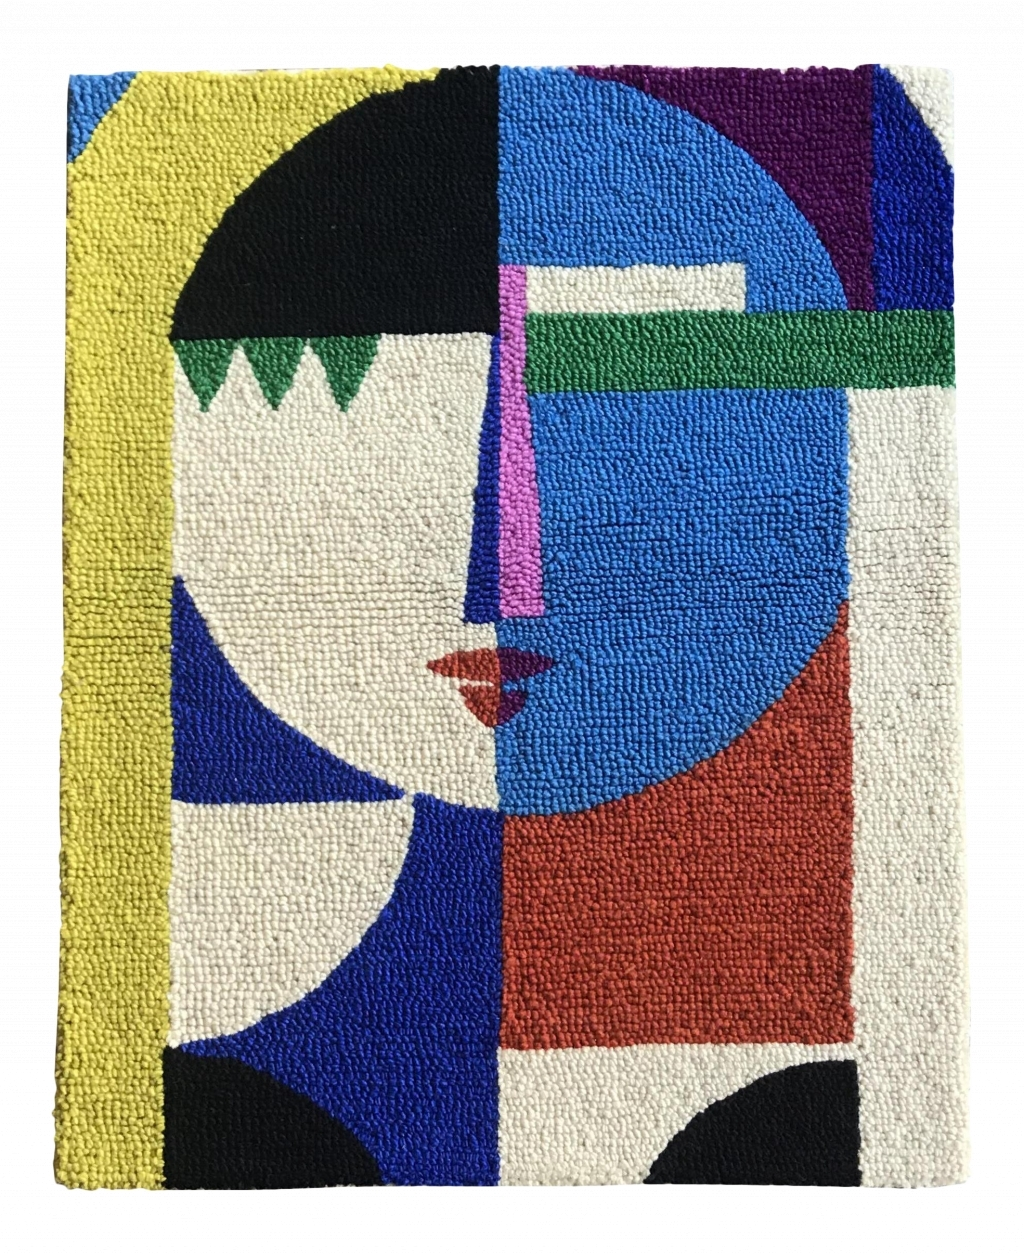 Fashionable Textile Wall Art In Conjunction With Vintage Used For Most Popular Abstract Textile Wall Art (View 7 of 15)